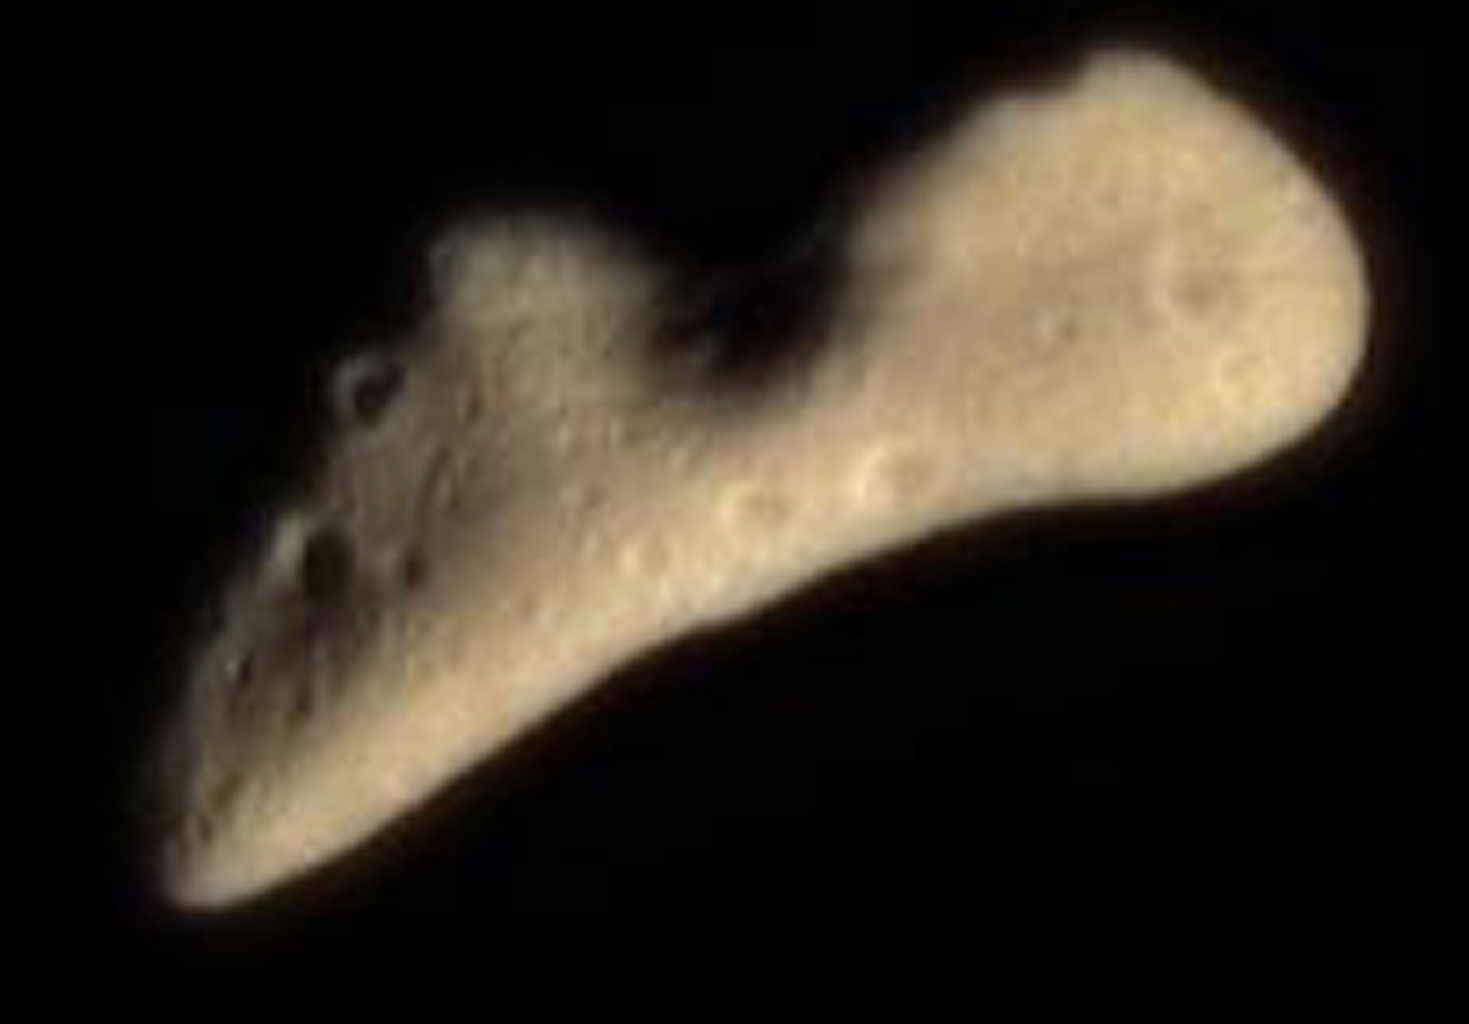 This color image taken by NASA's NEAR Shoemaker spacecraft on Feb 12, 2000, shows the subtle butterscotch hue is typical of a wide variety of minerals thought to be the major components of asteroids like Eros.